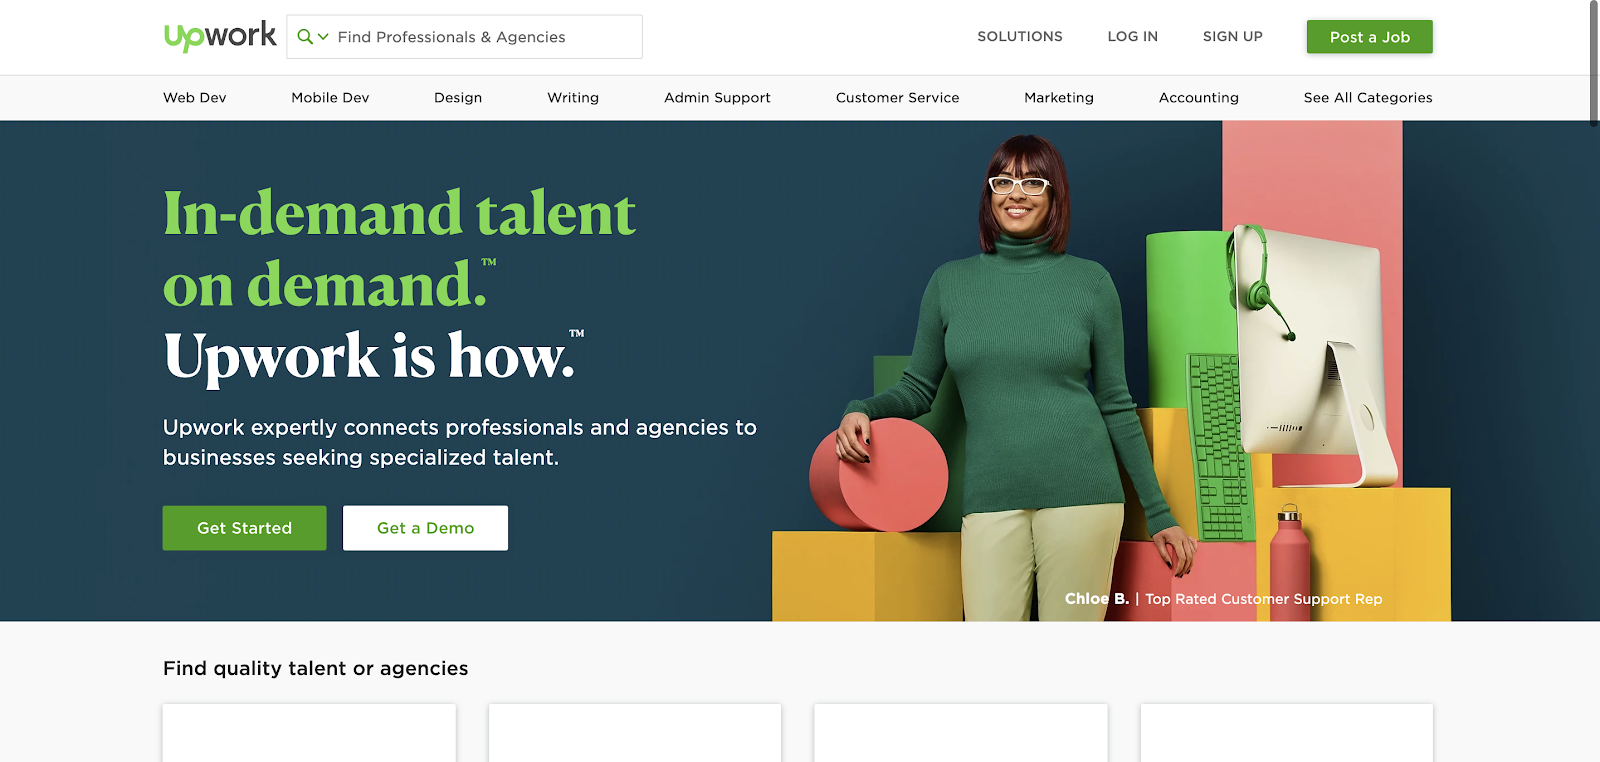 The Upwork homepage lets you search for website designers, web developers, and other online marketing services.